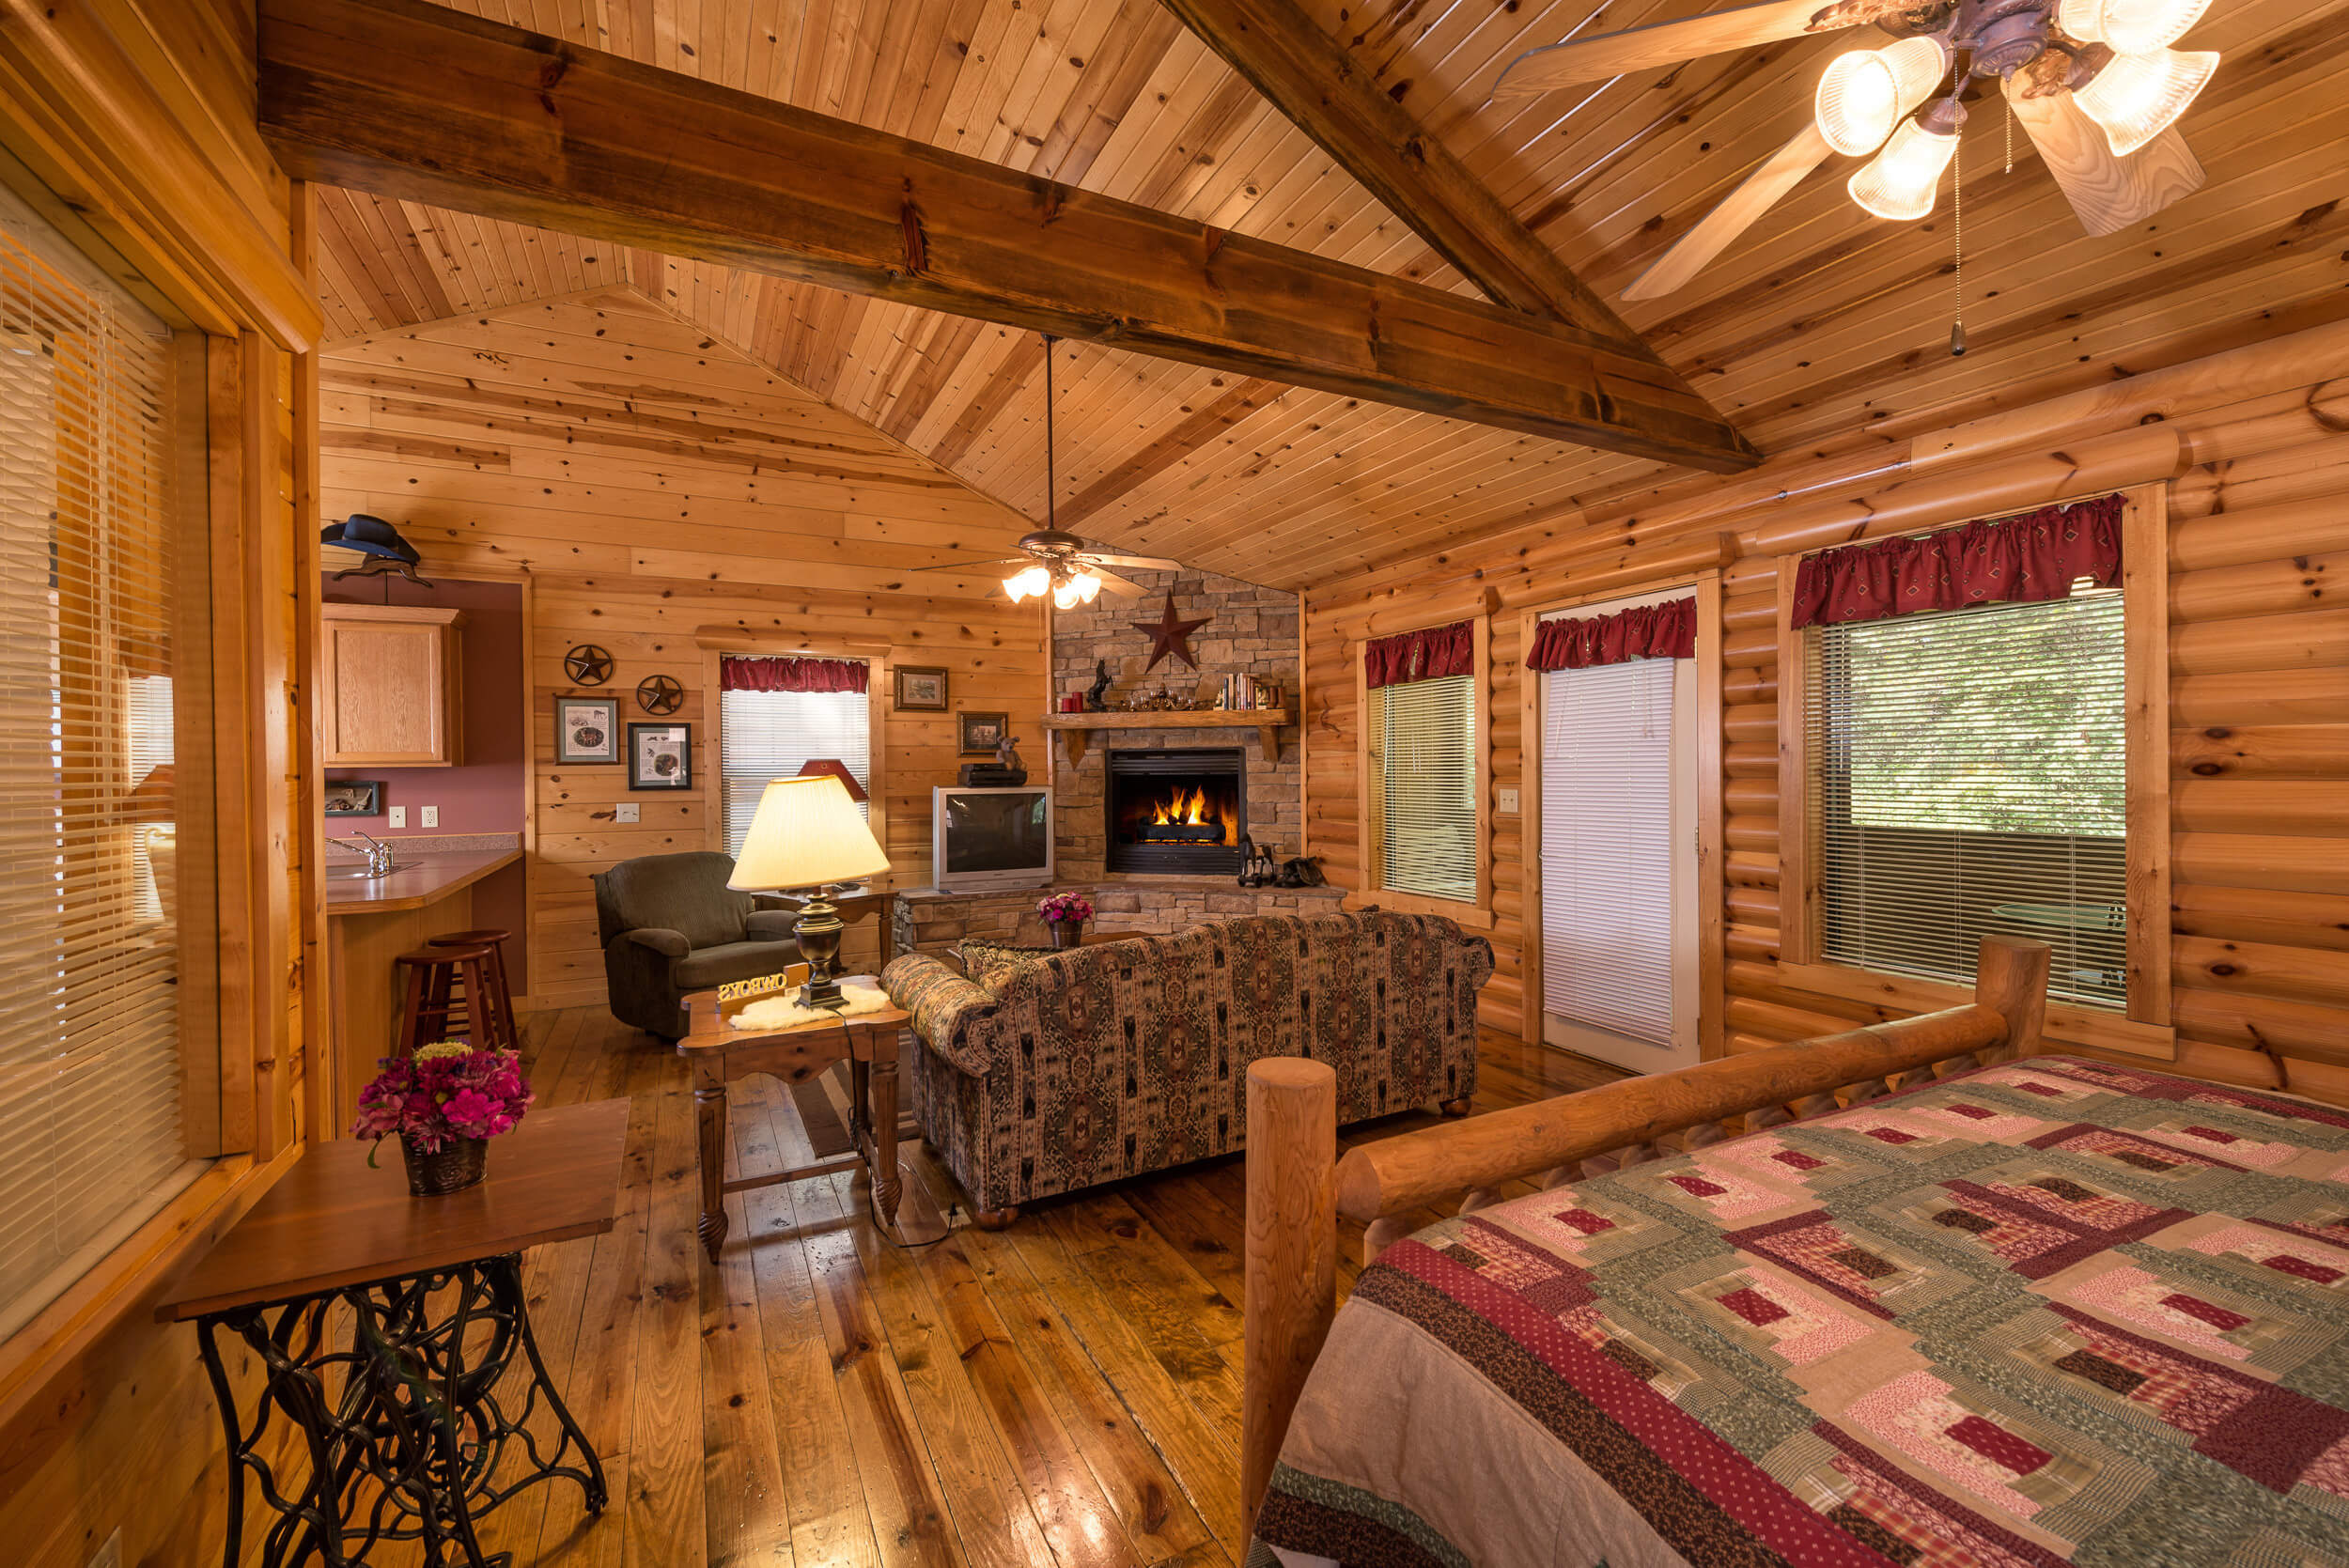 Two bedroom cabin westgate branson woods resort in for Two bedroom cabins